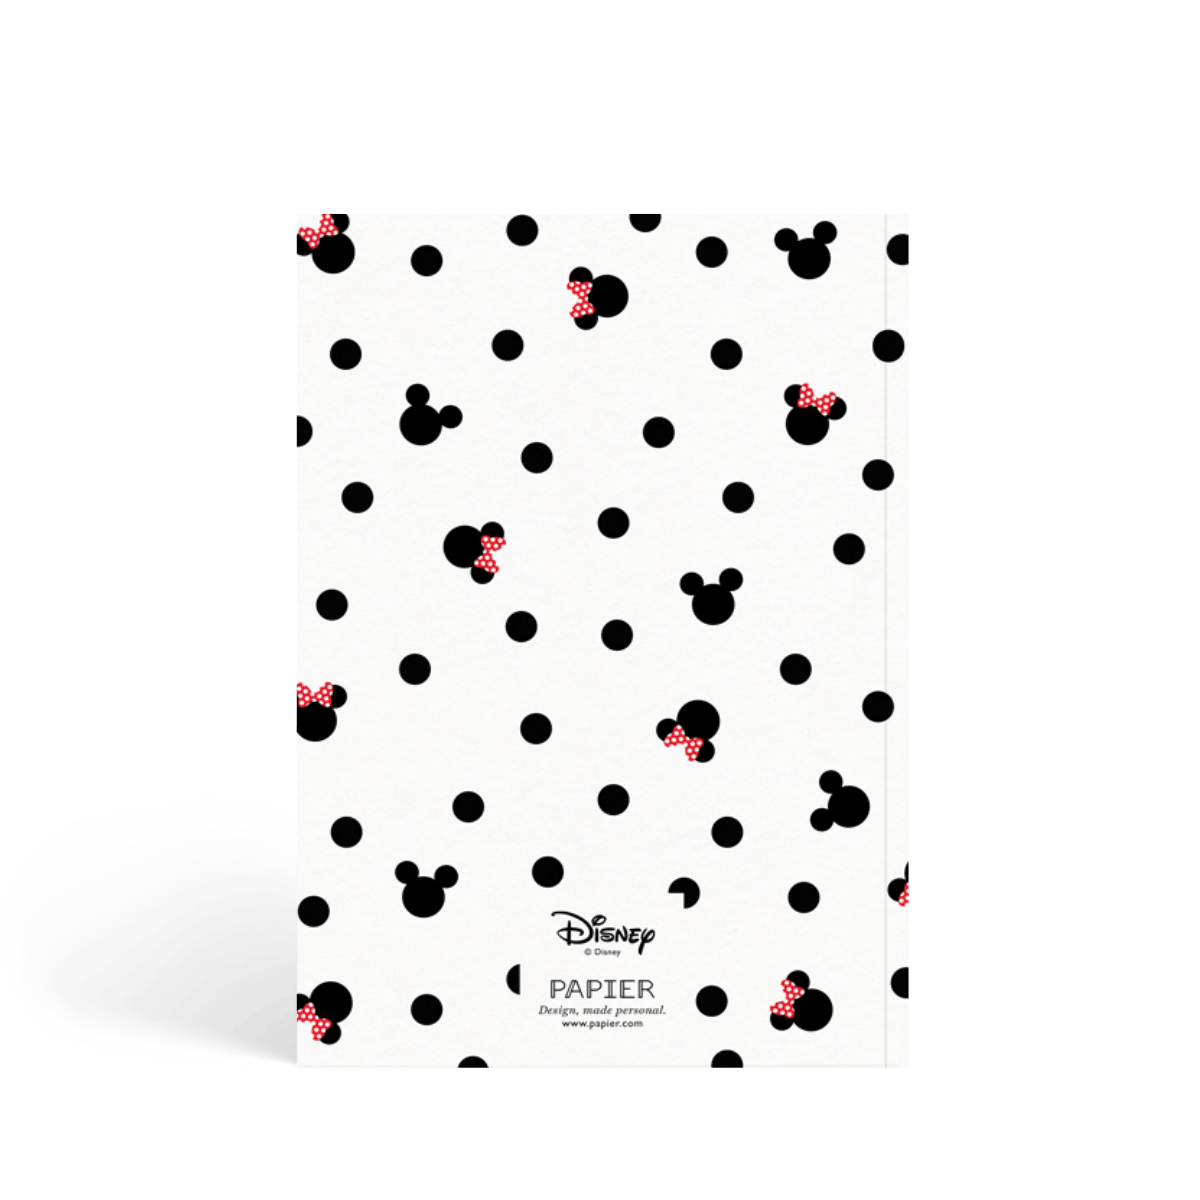 Https%3a%2f%2fwww.papier.com%2fproduct image%2f55819%2f5%2fmickey minnie mouse 13405 back 1542299837.png?ixlib=rb 1.1